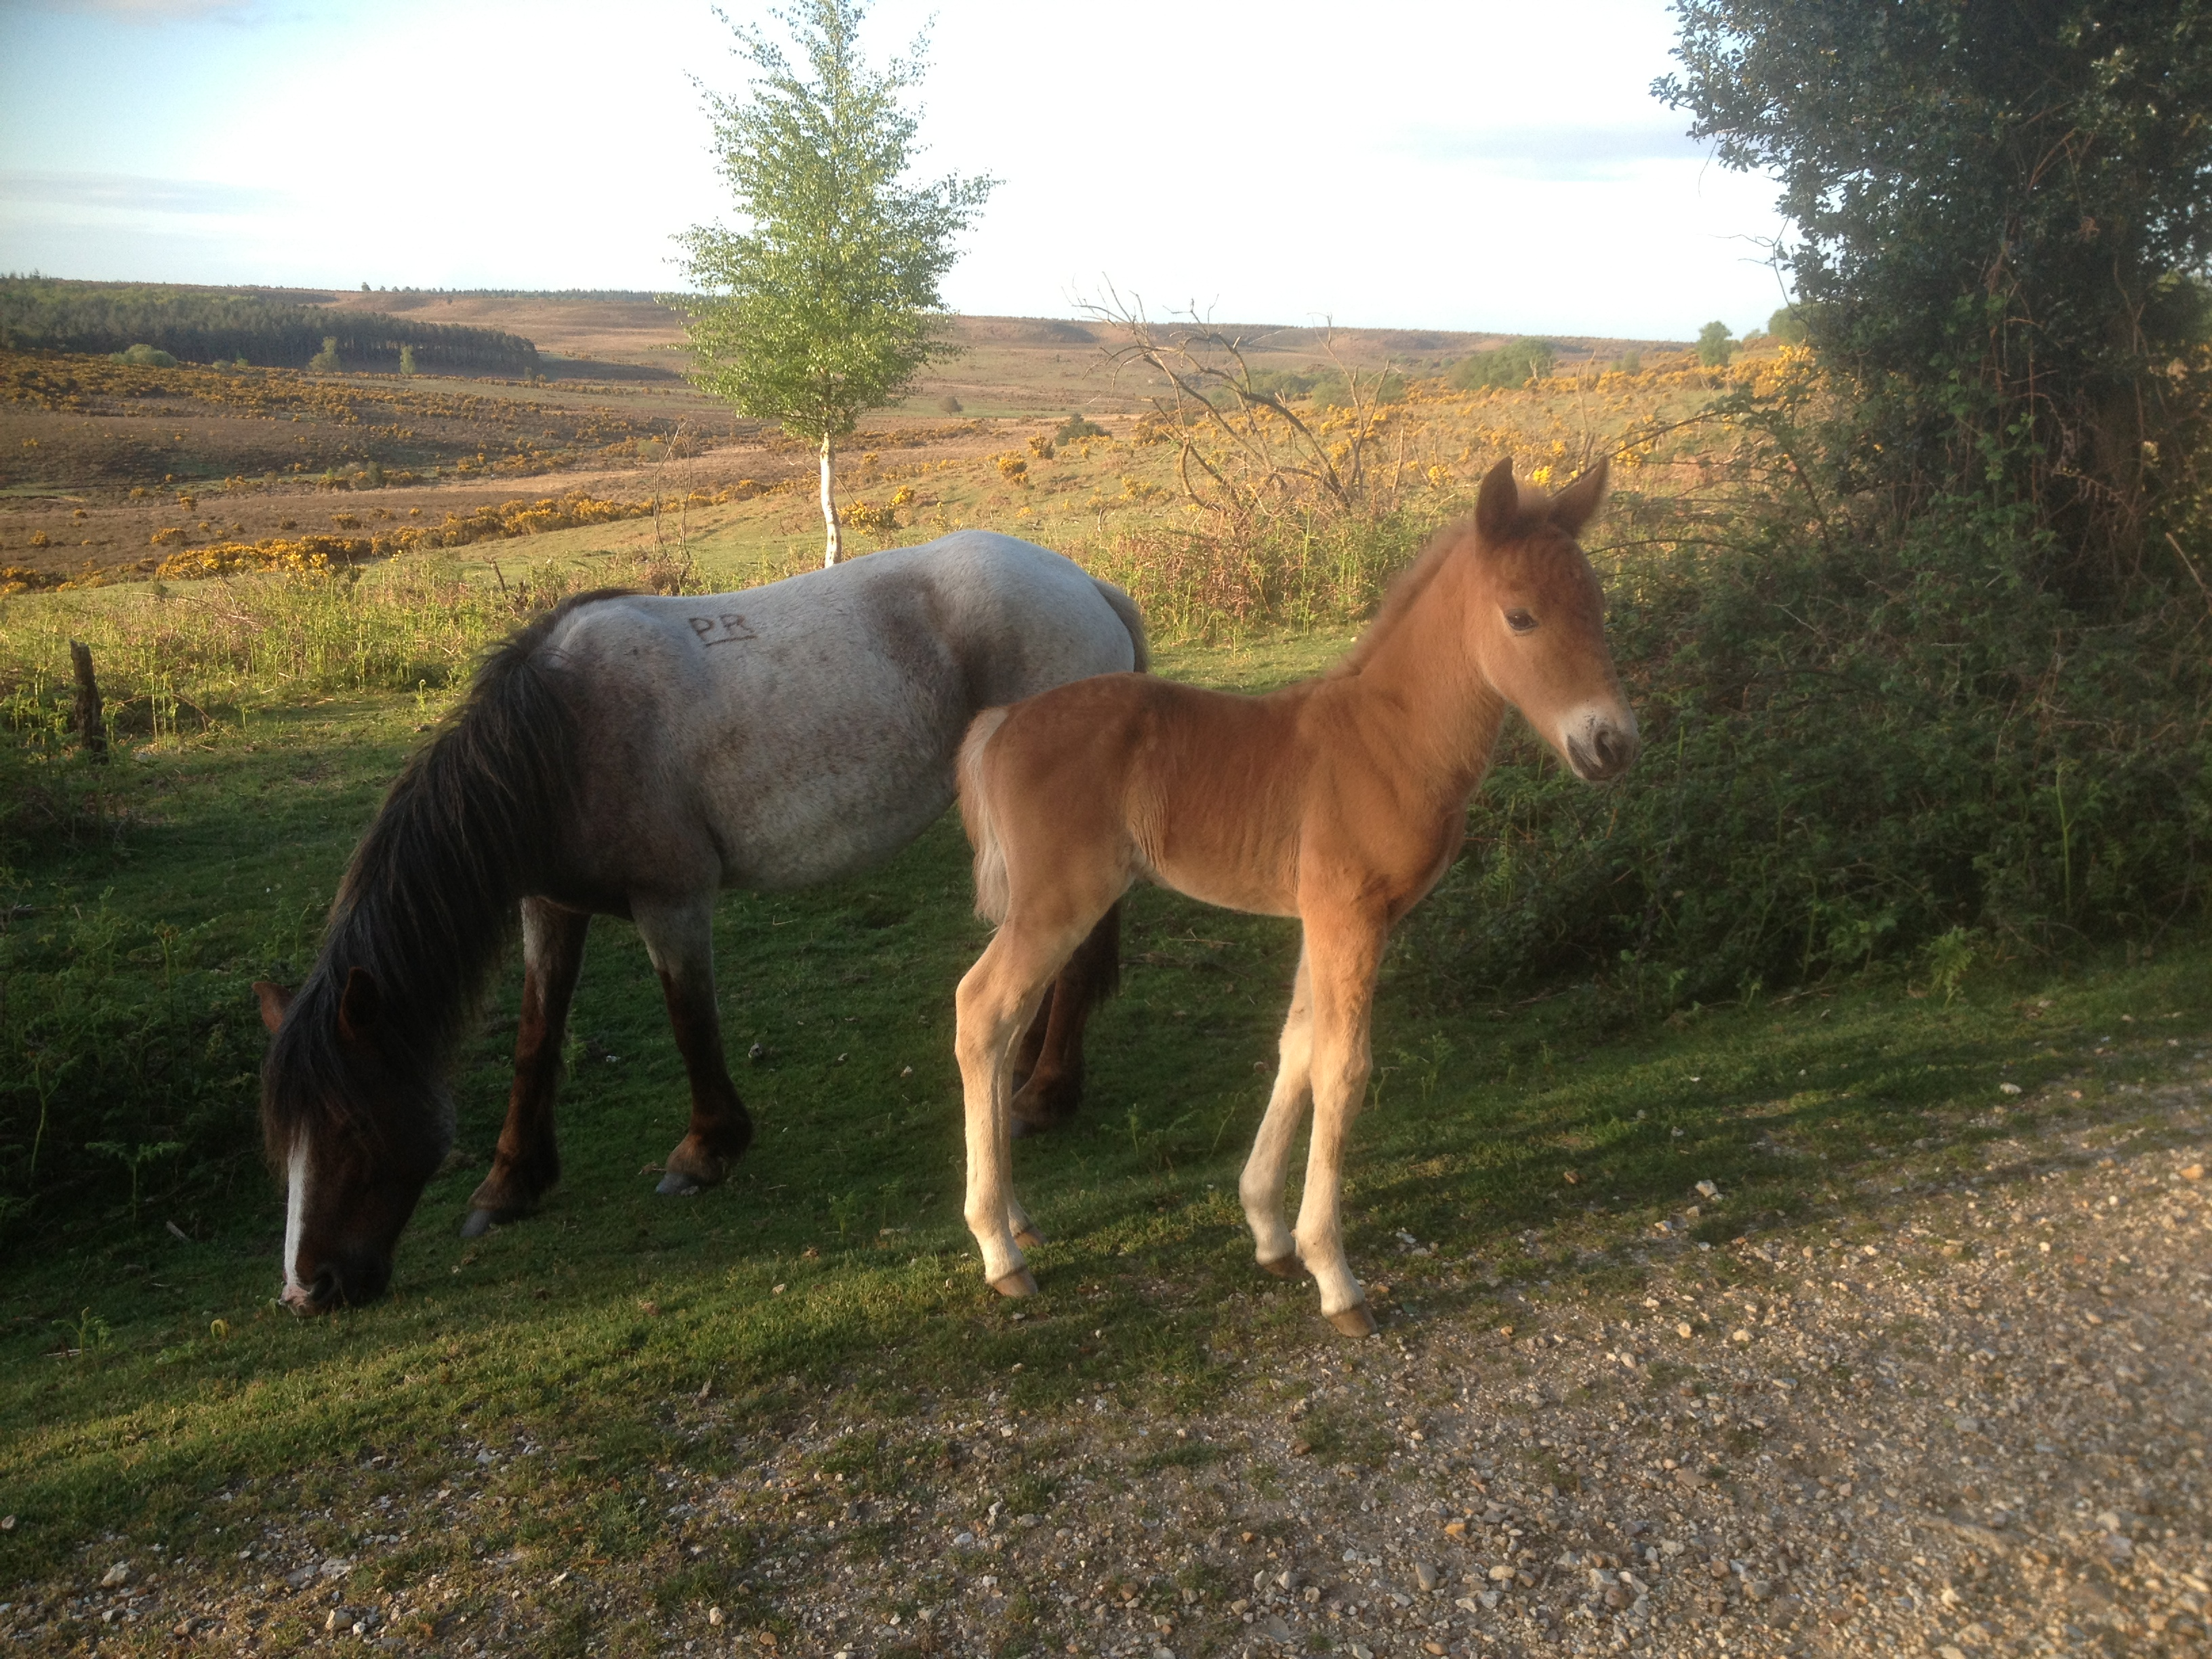 The foals born on the New Forest represent a living heritage.